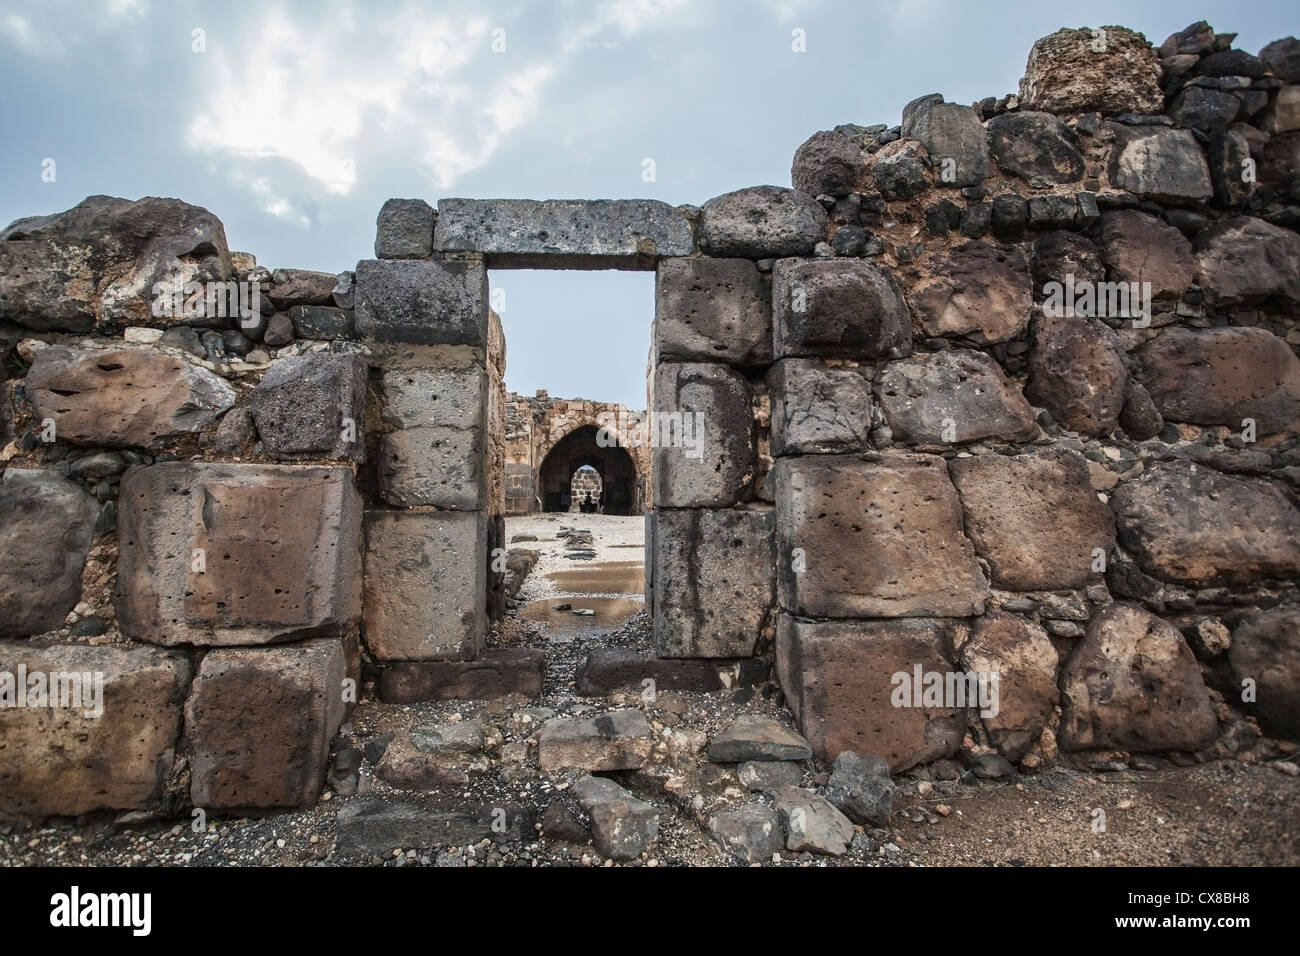 Belvoir Fortress Kokhav Ha Yarden National Park; Israel Stock Photo